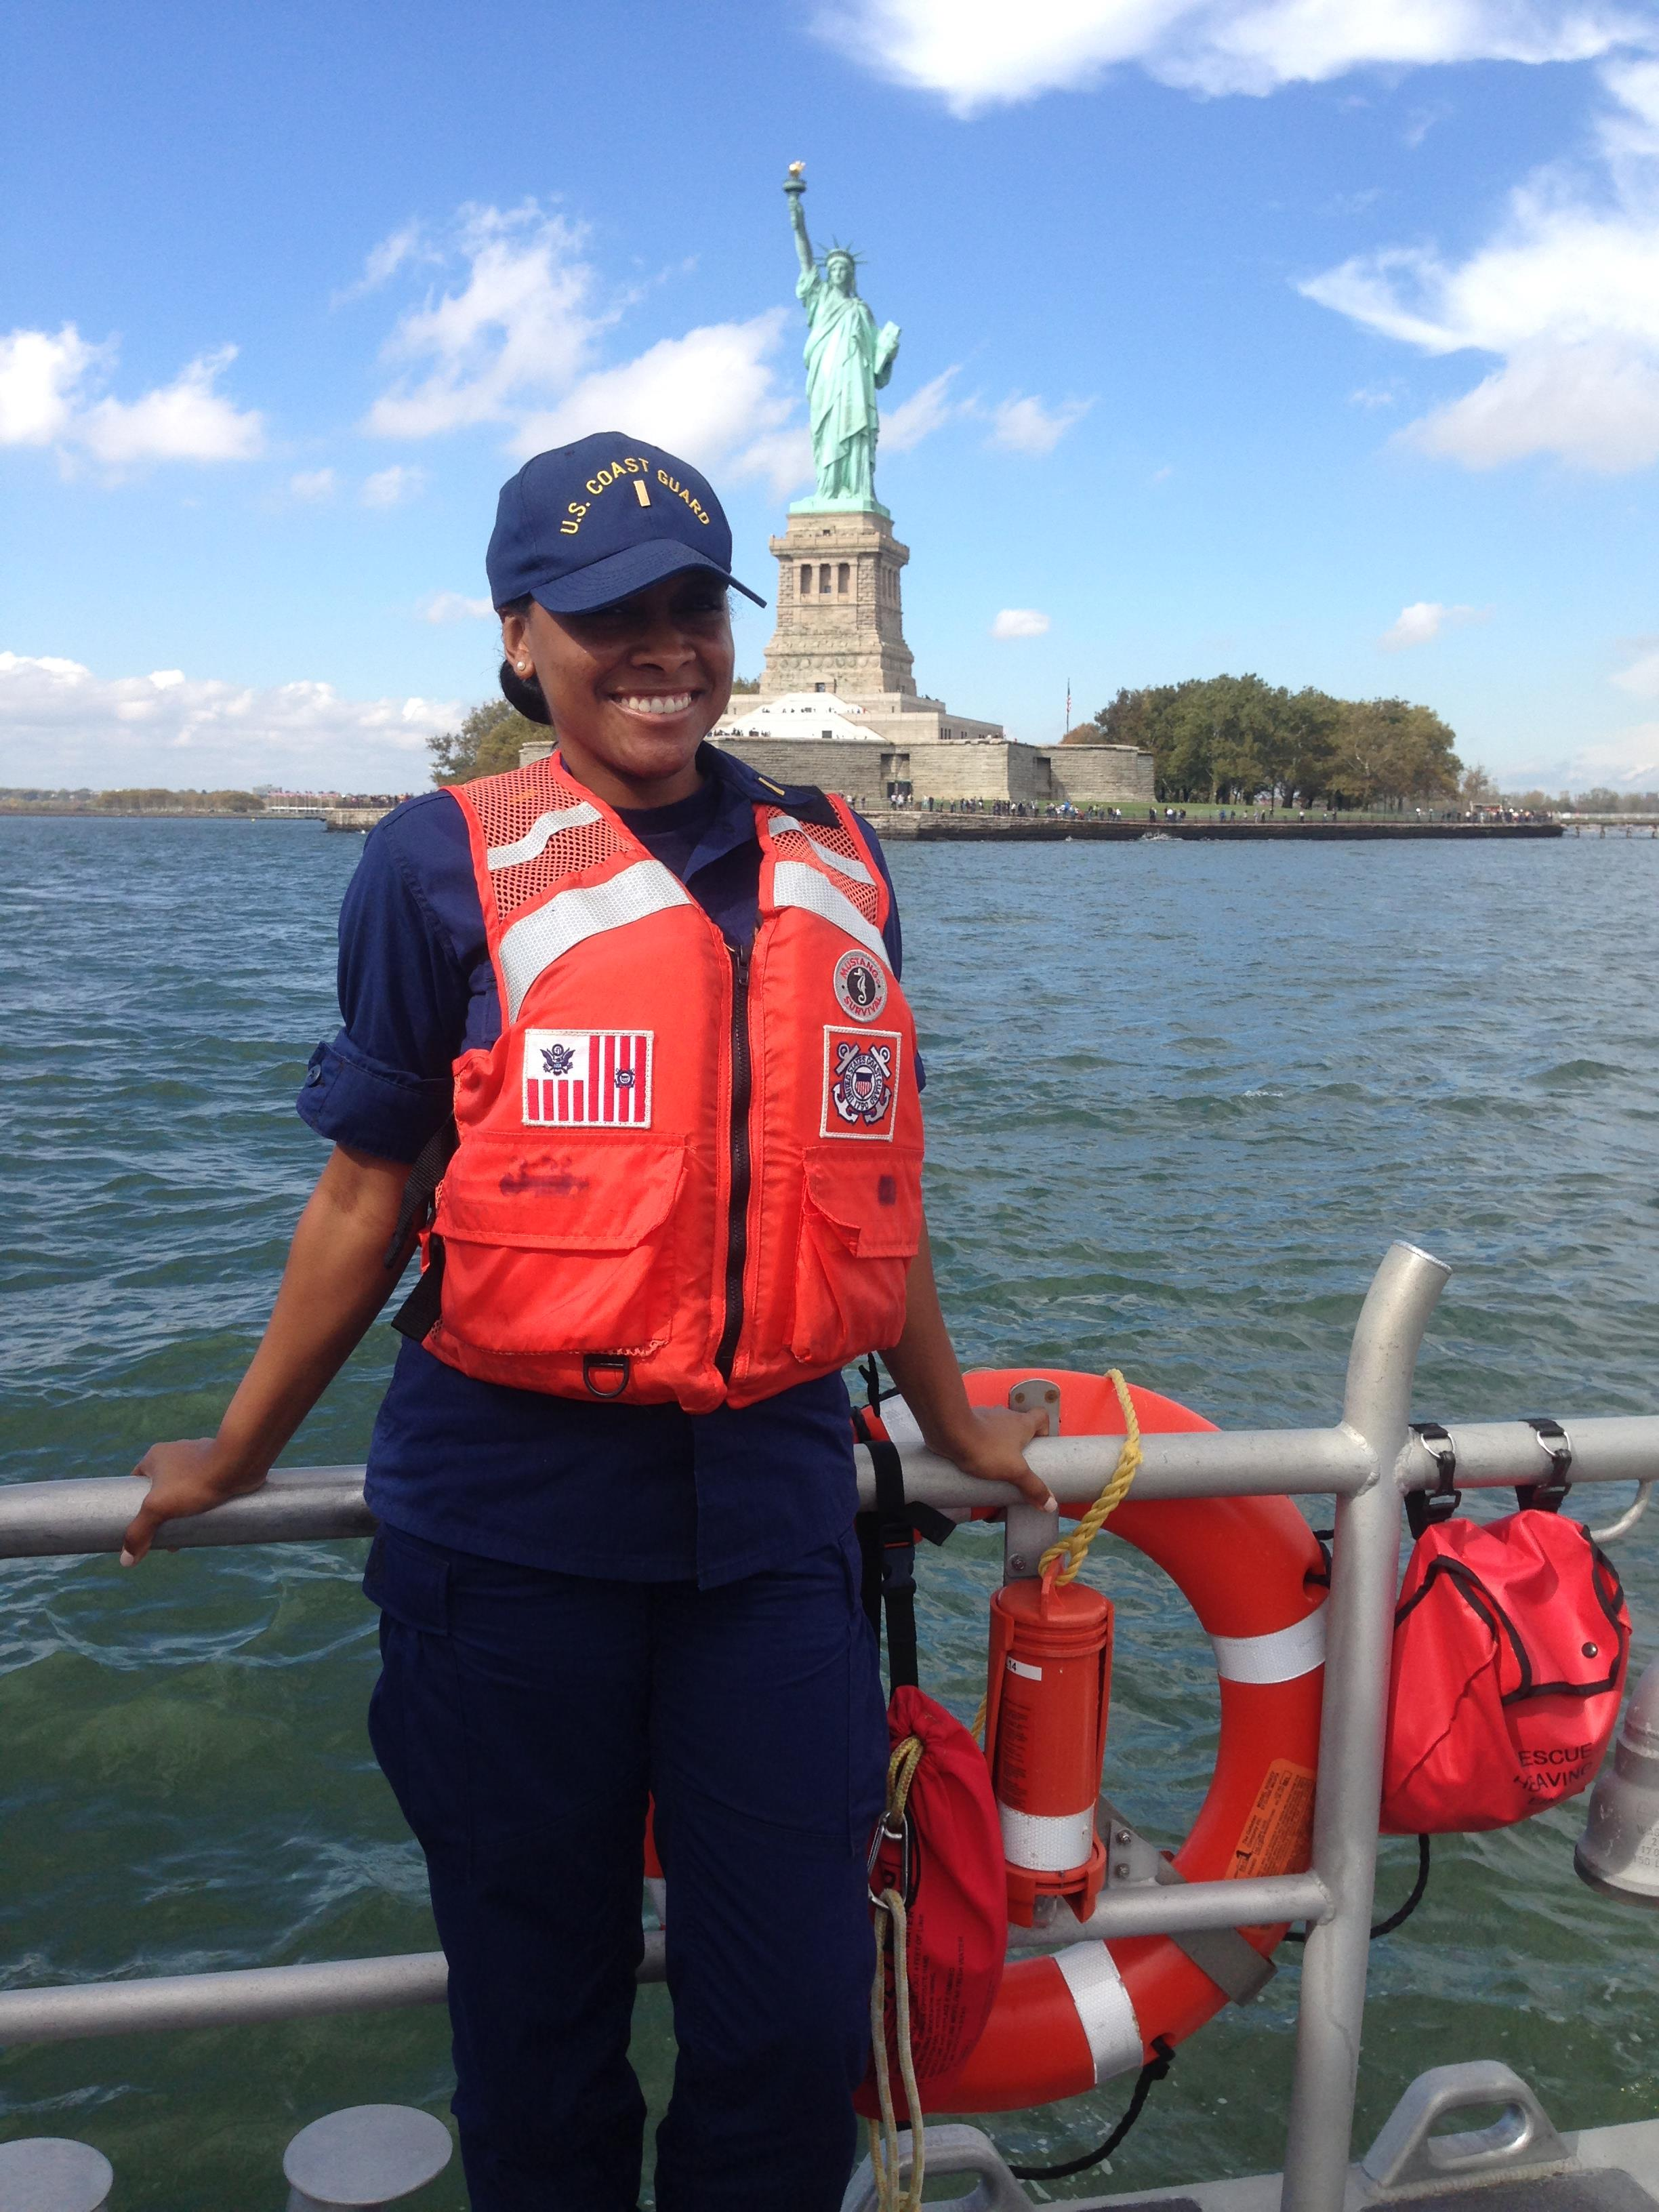 NEW YORK - Ens. Kelly Relf stands on the back of a 45-foot medium response boat in front of the Statue of Liberty in New York Harbor, October 16, 2014. Now Lt. Relf took time Sept. 9, 2020, to interview Capt. Michael Day, who coordinated the Coast Guard's response during 9/11. (U.S. Coast Guard photo)